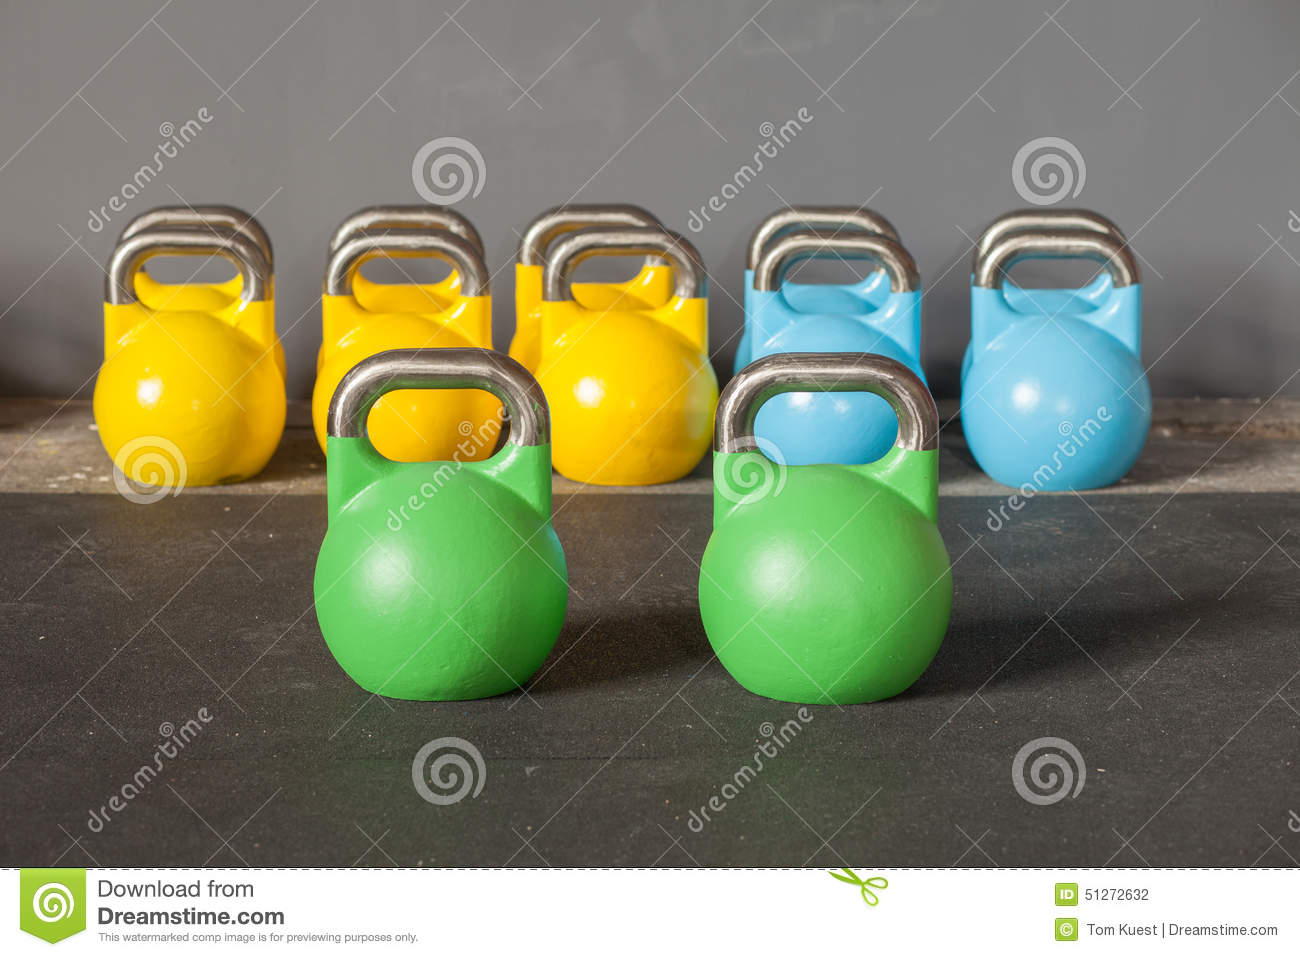 Colorful Kettlebells In A Row Stock Image | CartoonDealer ...